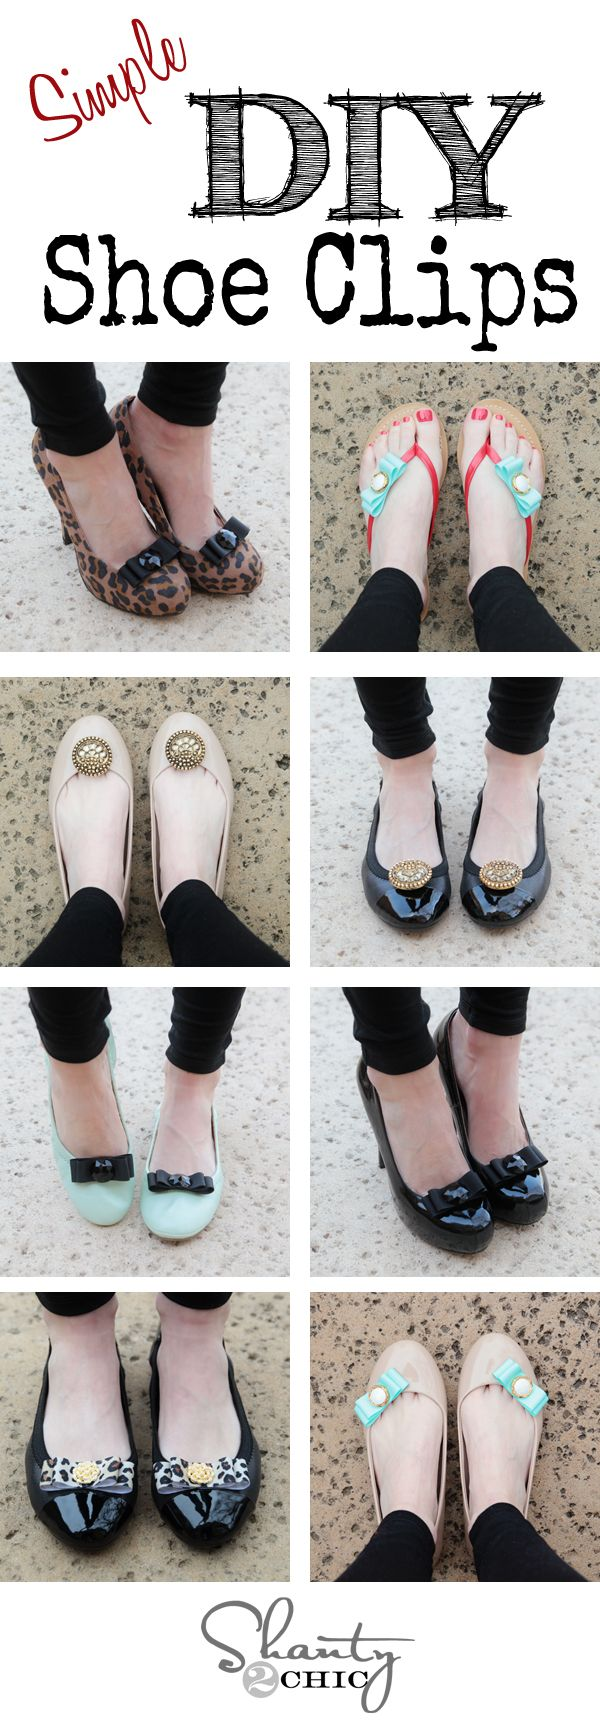 Create the Perfect Shoes for Any Occasion with These Great DIY Shoe Clips - DIY & Crafts